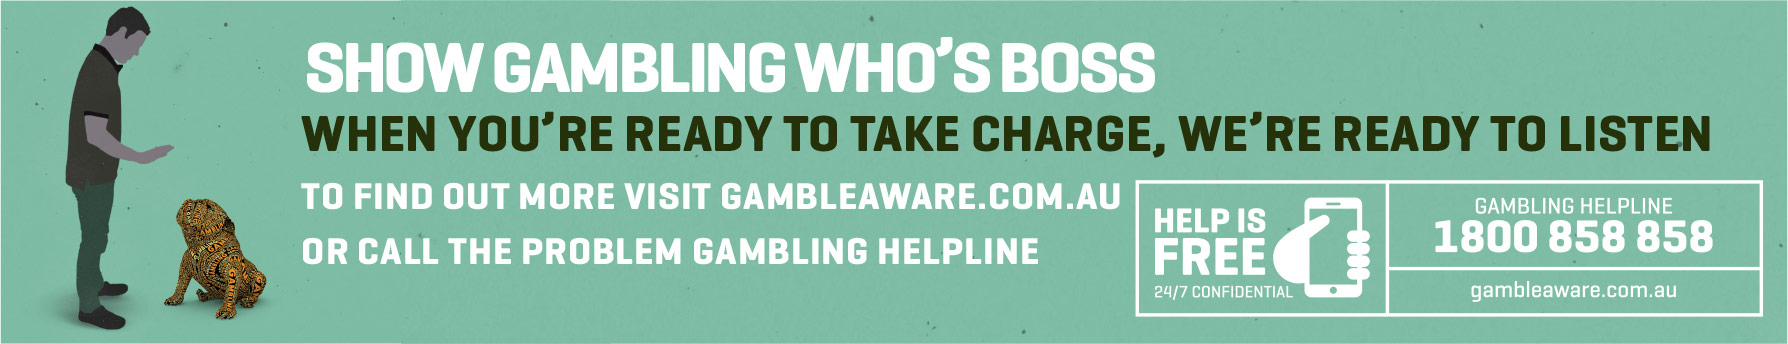 Visit gambleaware.com.au Image of man in control of a dog with the text: show gambling who's boss, when you're ready to take charge, we're ready to listen. To find out more visit gambleaware.com.au or call the Problem Gambling Helpline 1800 858 858